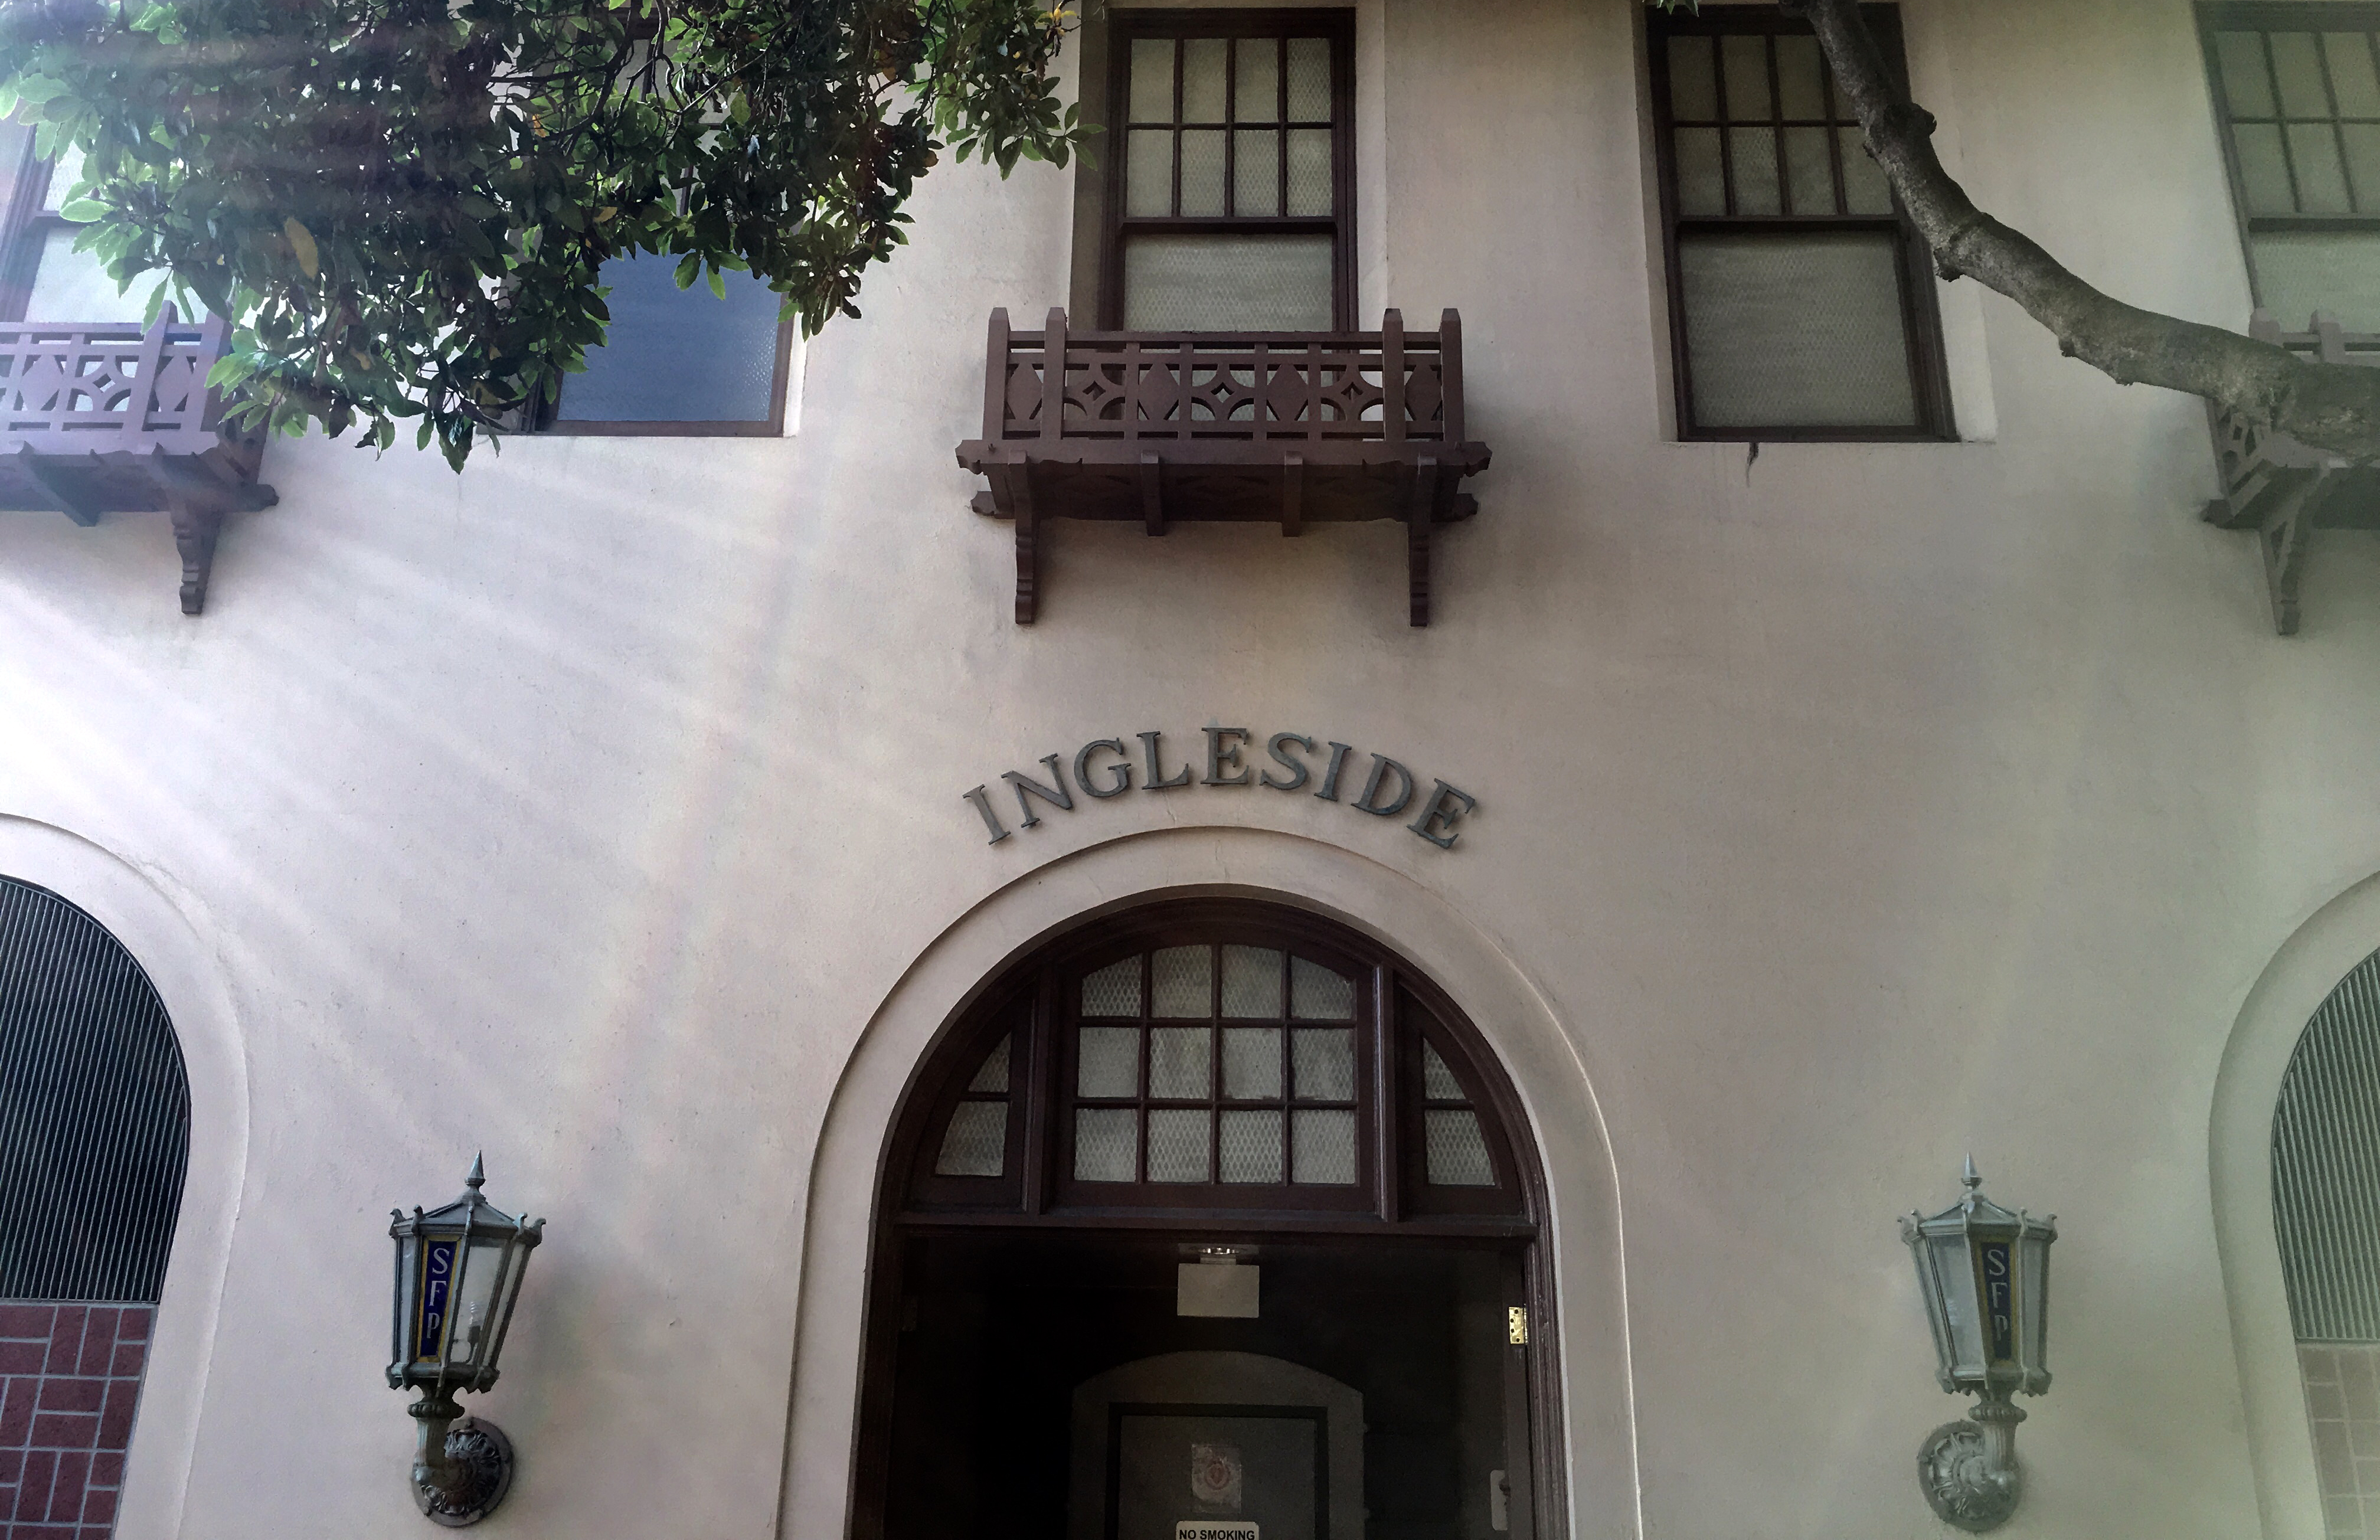 Changes at Ingleside police station and a shootout in Bernal Heights